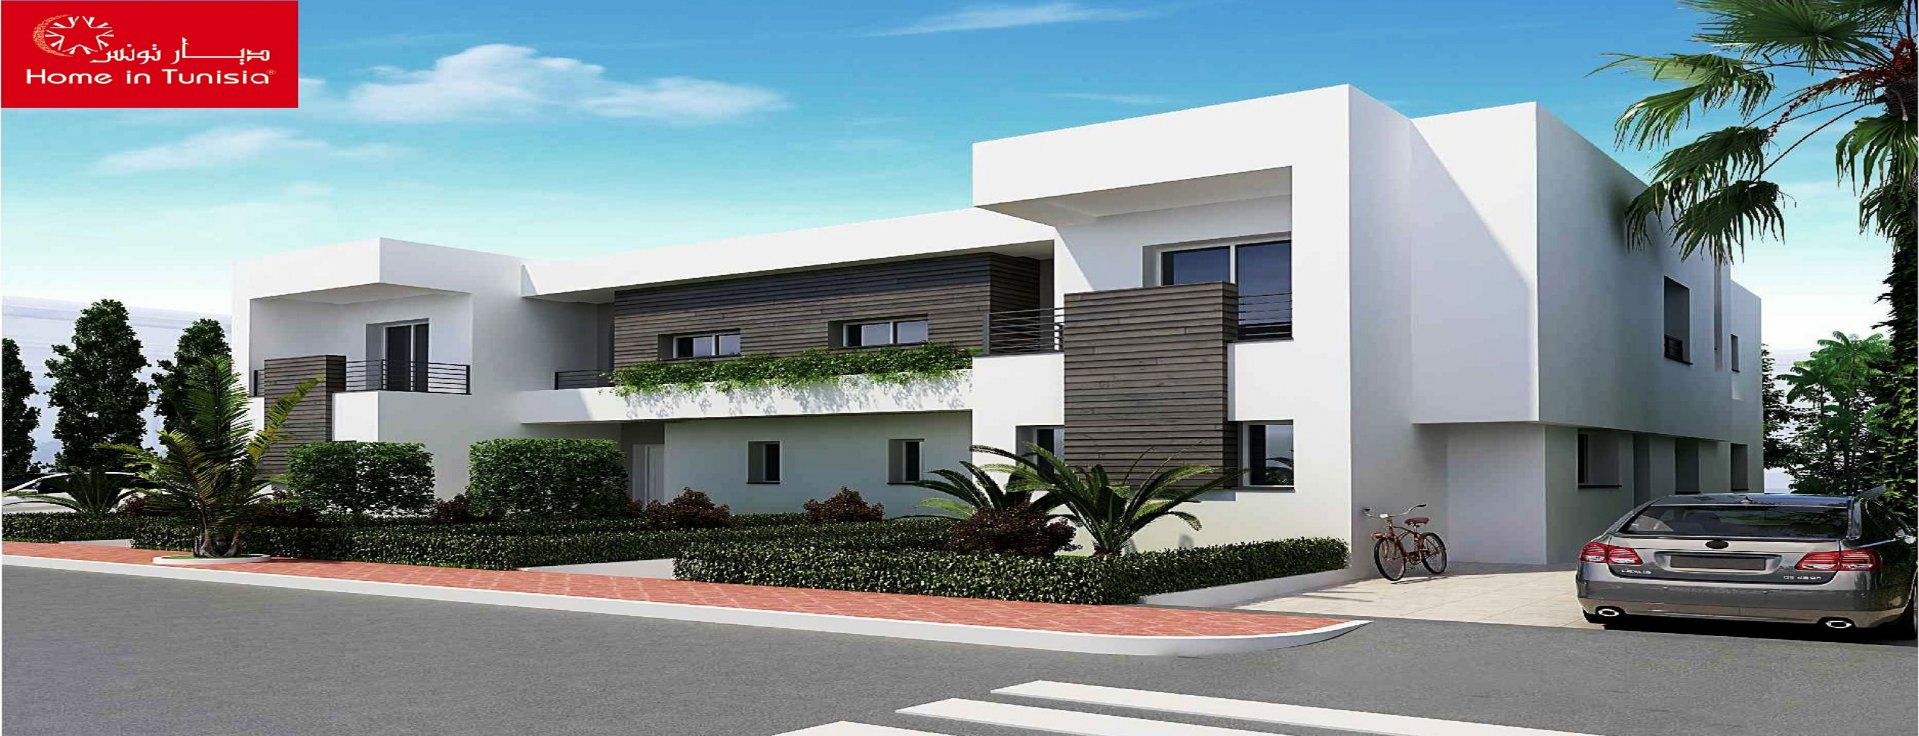 Villa isolated new golf of 323.06 m2 with 4 rooms terrace garden swimming pool garage